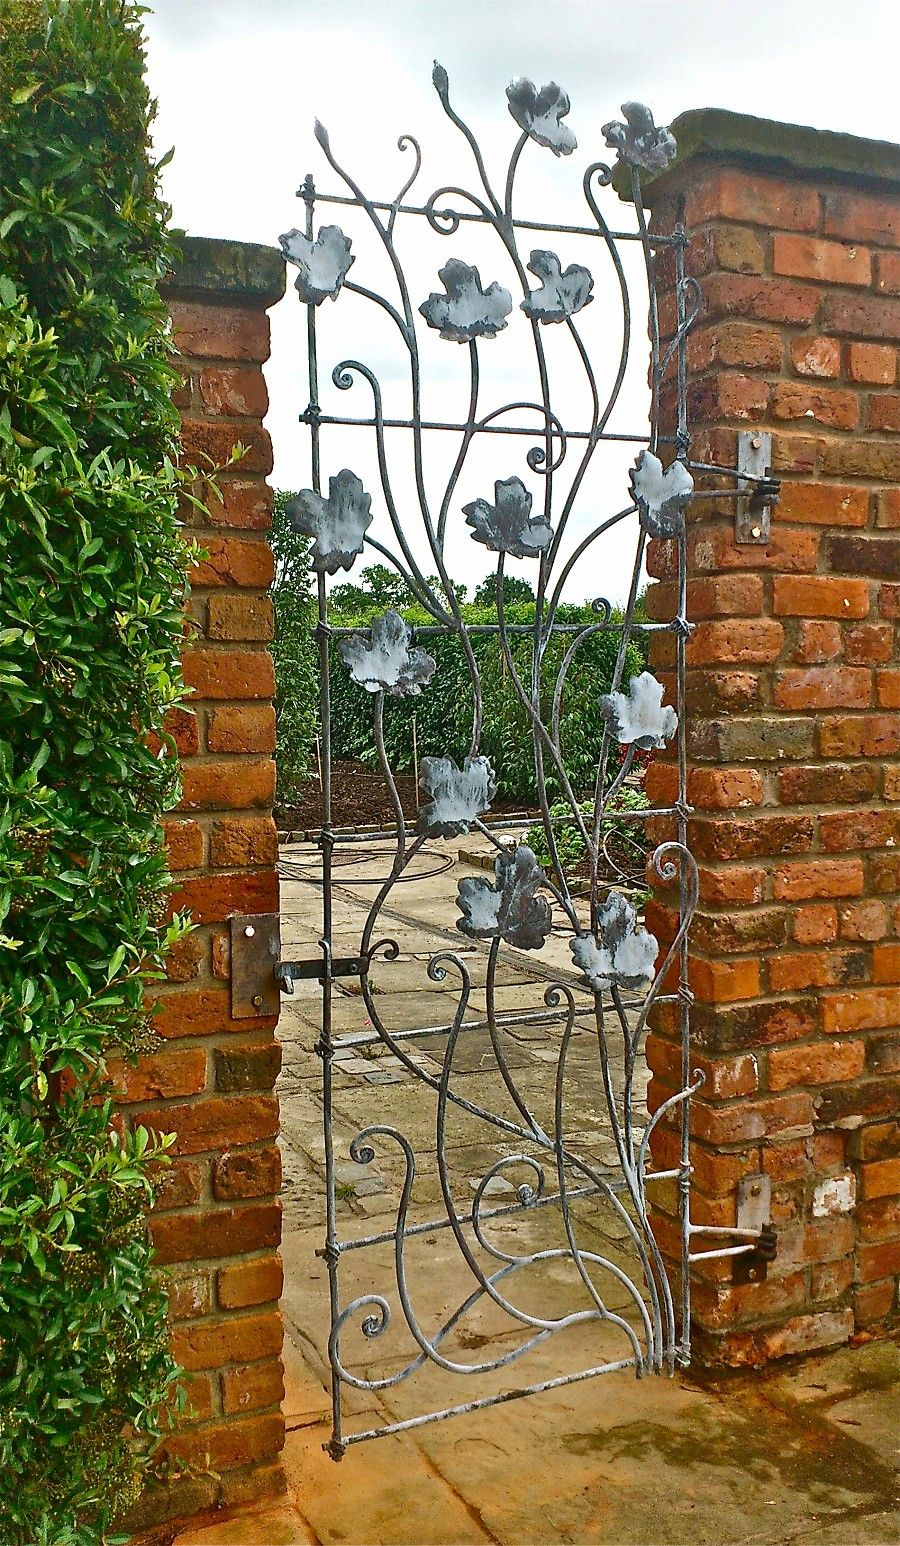 This gate is one of three opening onto a courtyard in a private